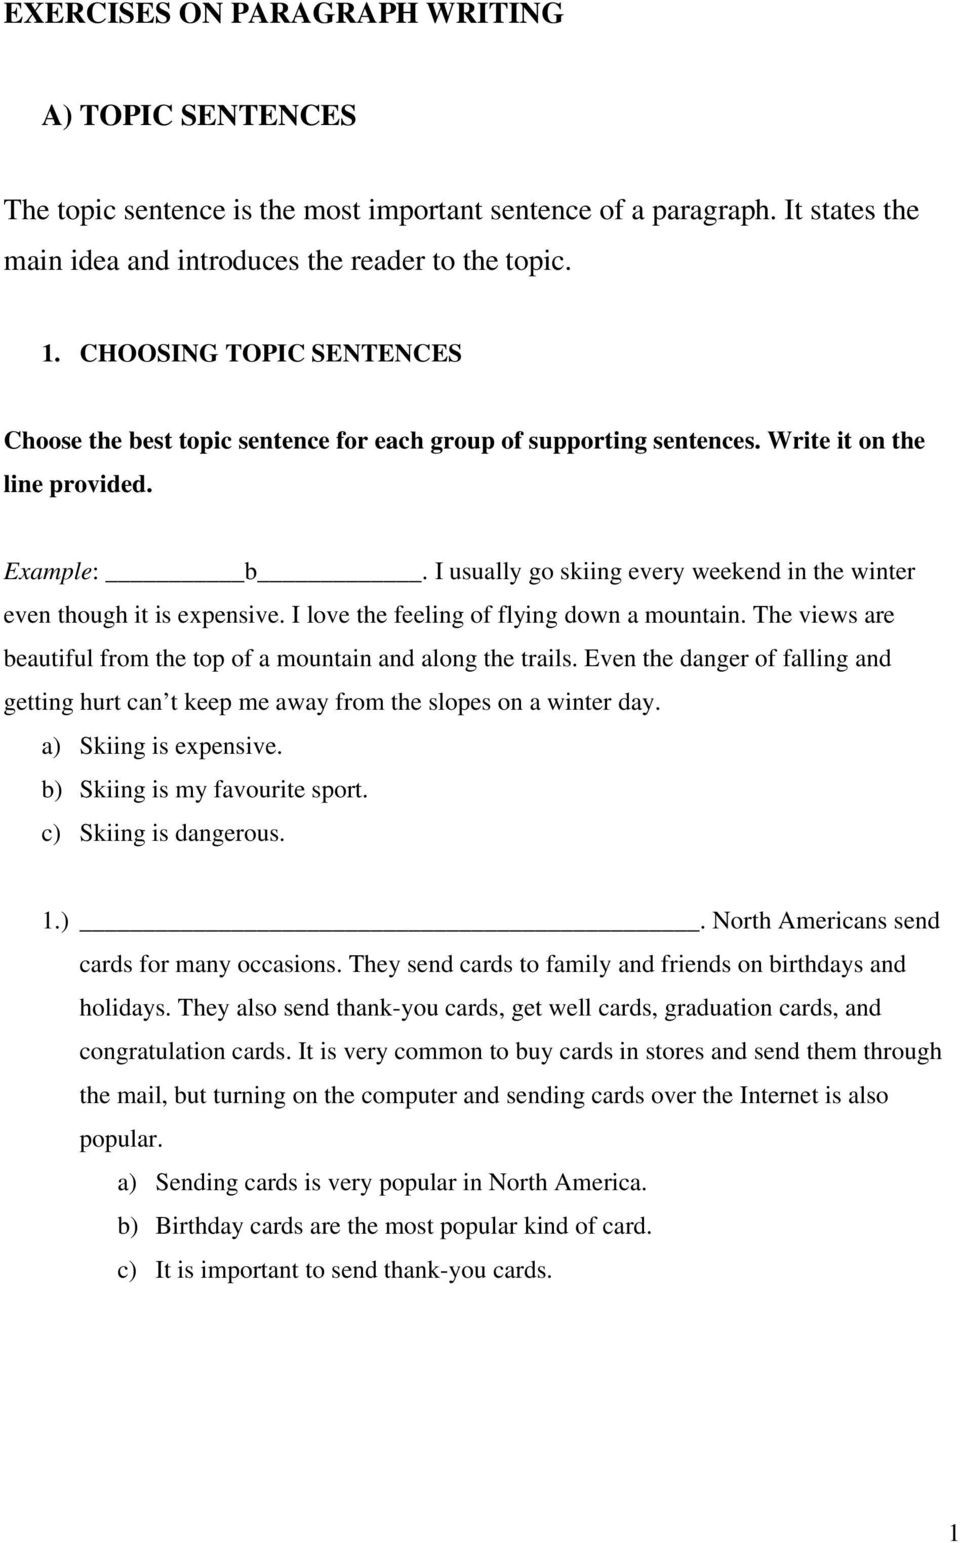 Writing A topic Sentence Worksheet Choose the Best topic Sentence for Each Group Of Supporting